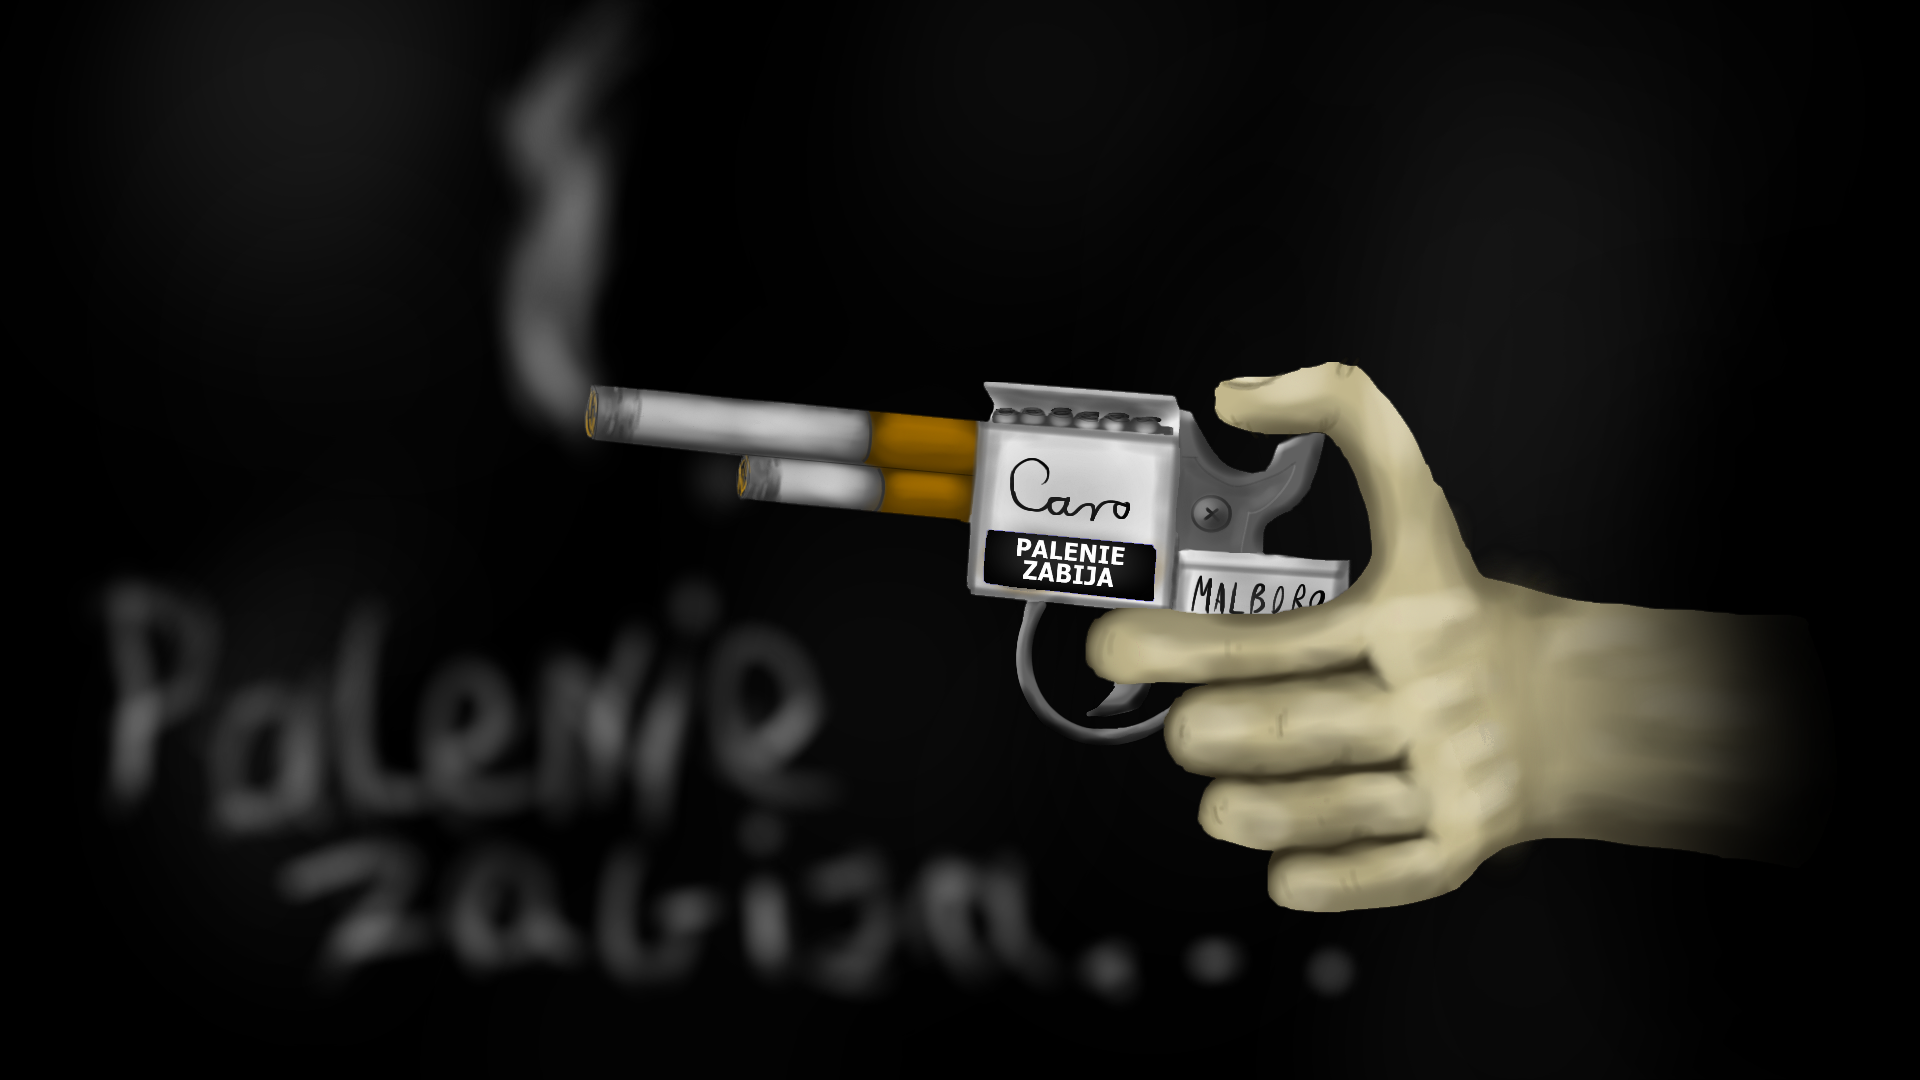 Best 68 No Smoking Wallpaper on HipWallpaper Smoking Wallpapers 1920x1080